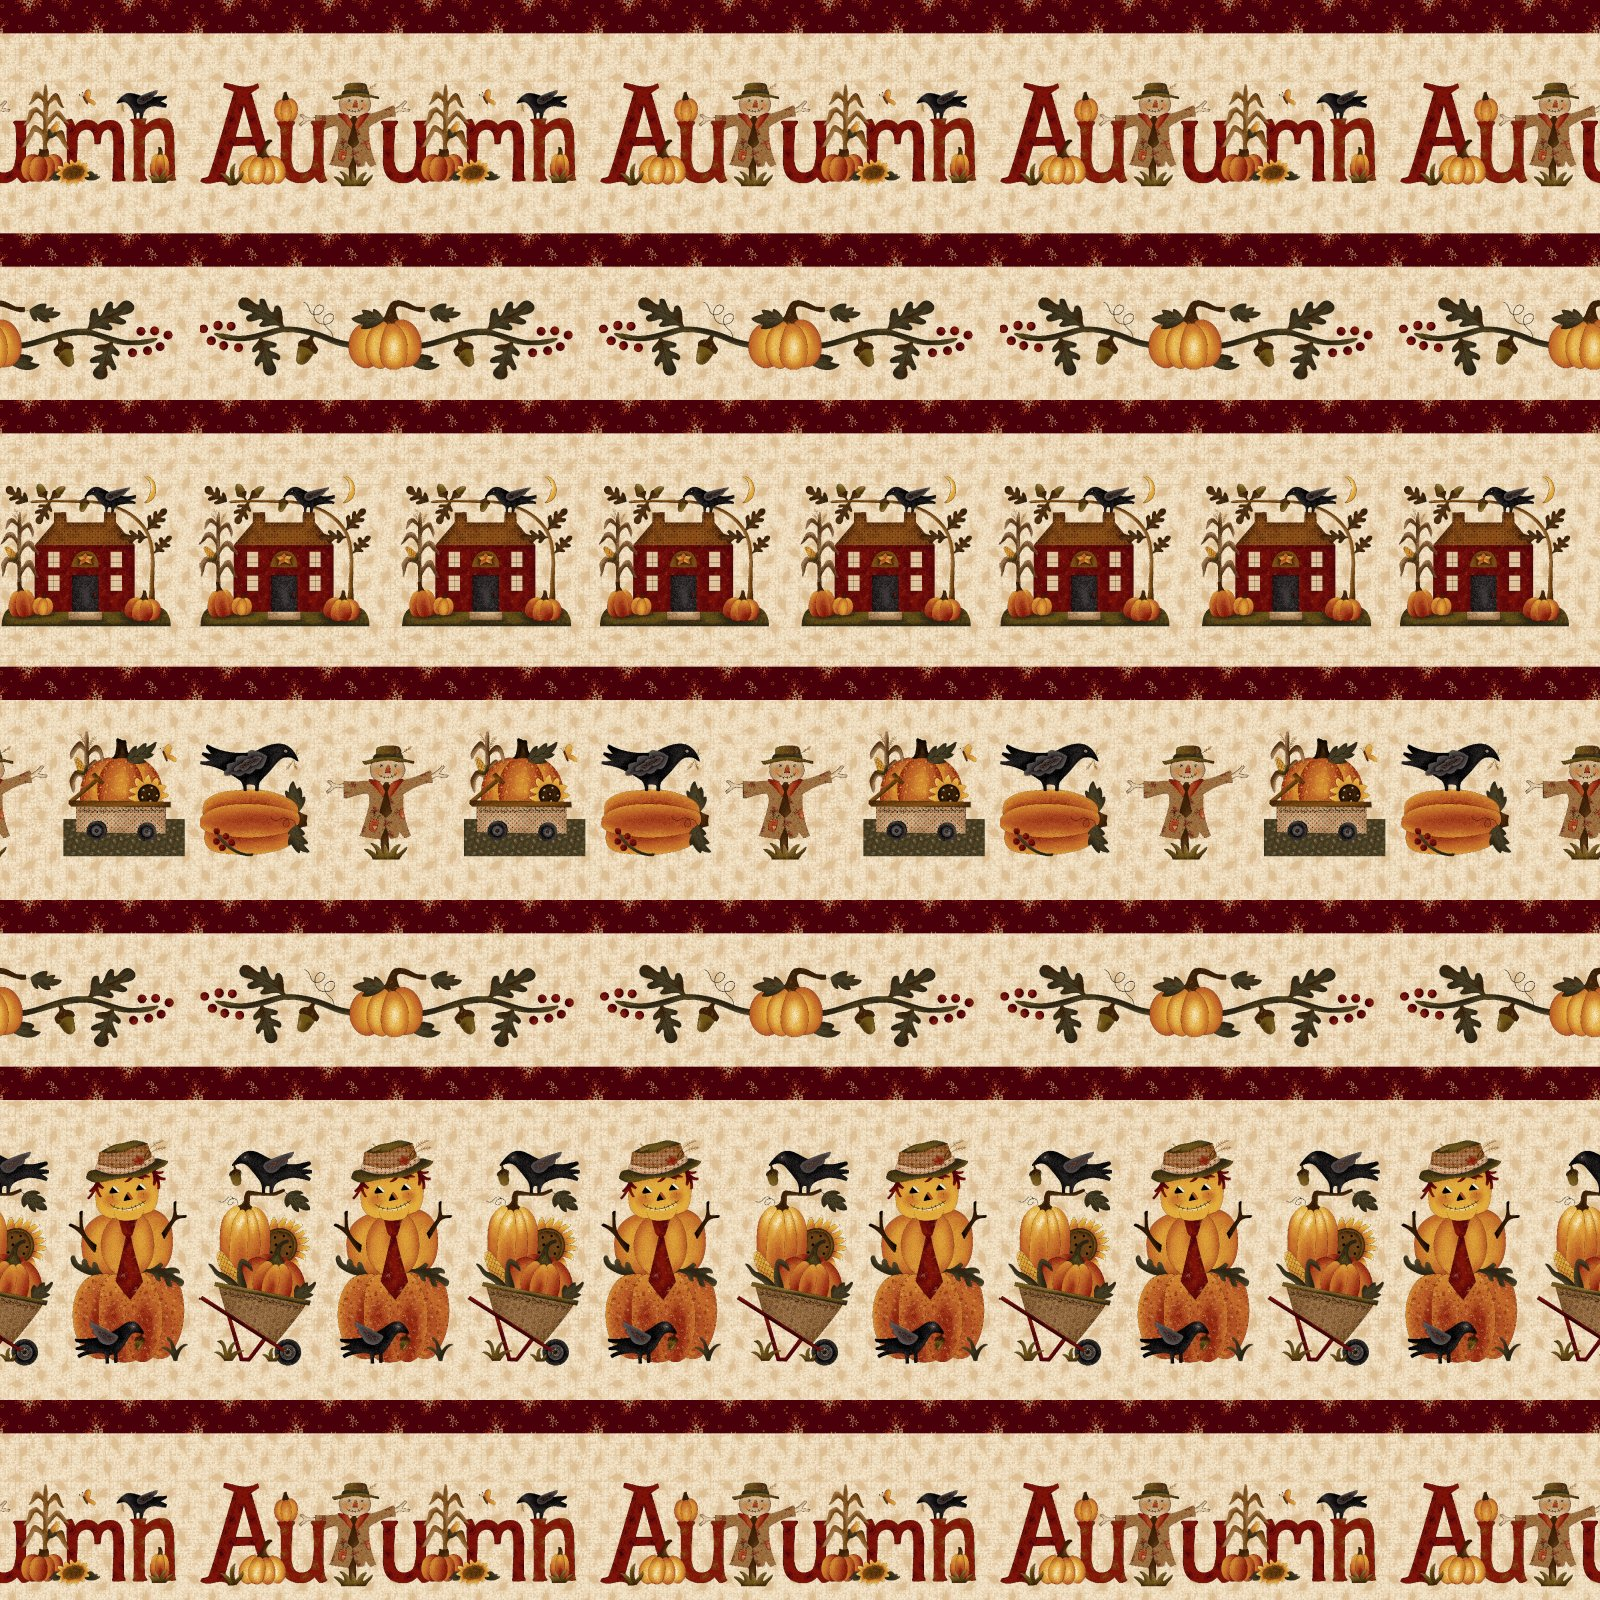 Buttermilk Autumn - 2272-34 * 1/2 yard